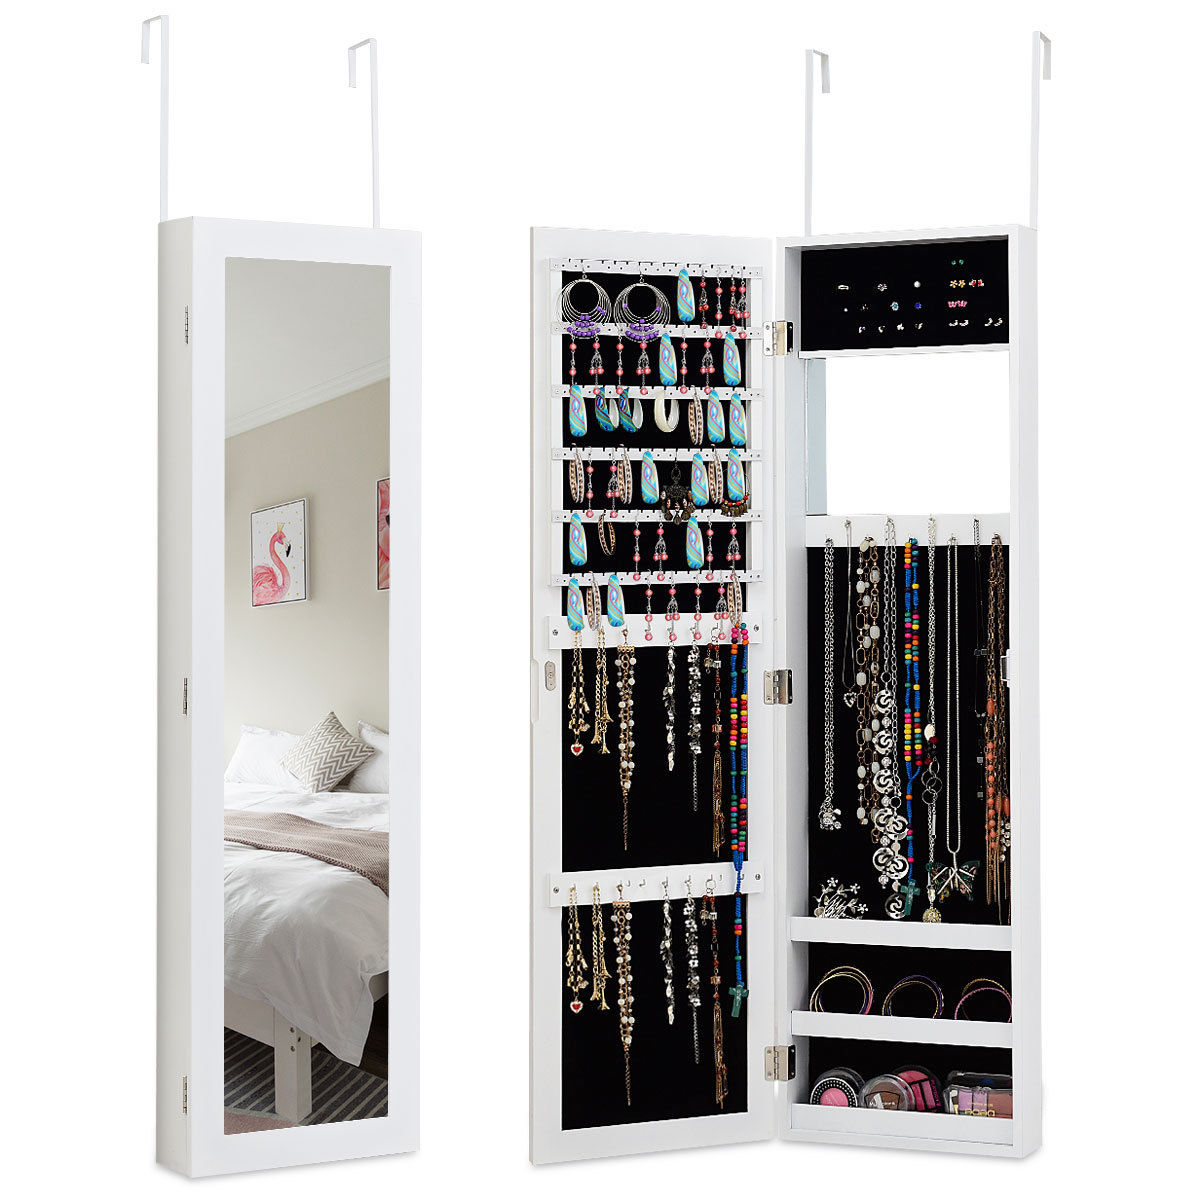 Costway Wall Door Mounted Mirrored Jewelry Cabinet Armoire Storage Organizer White